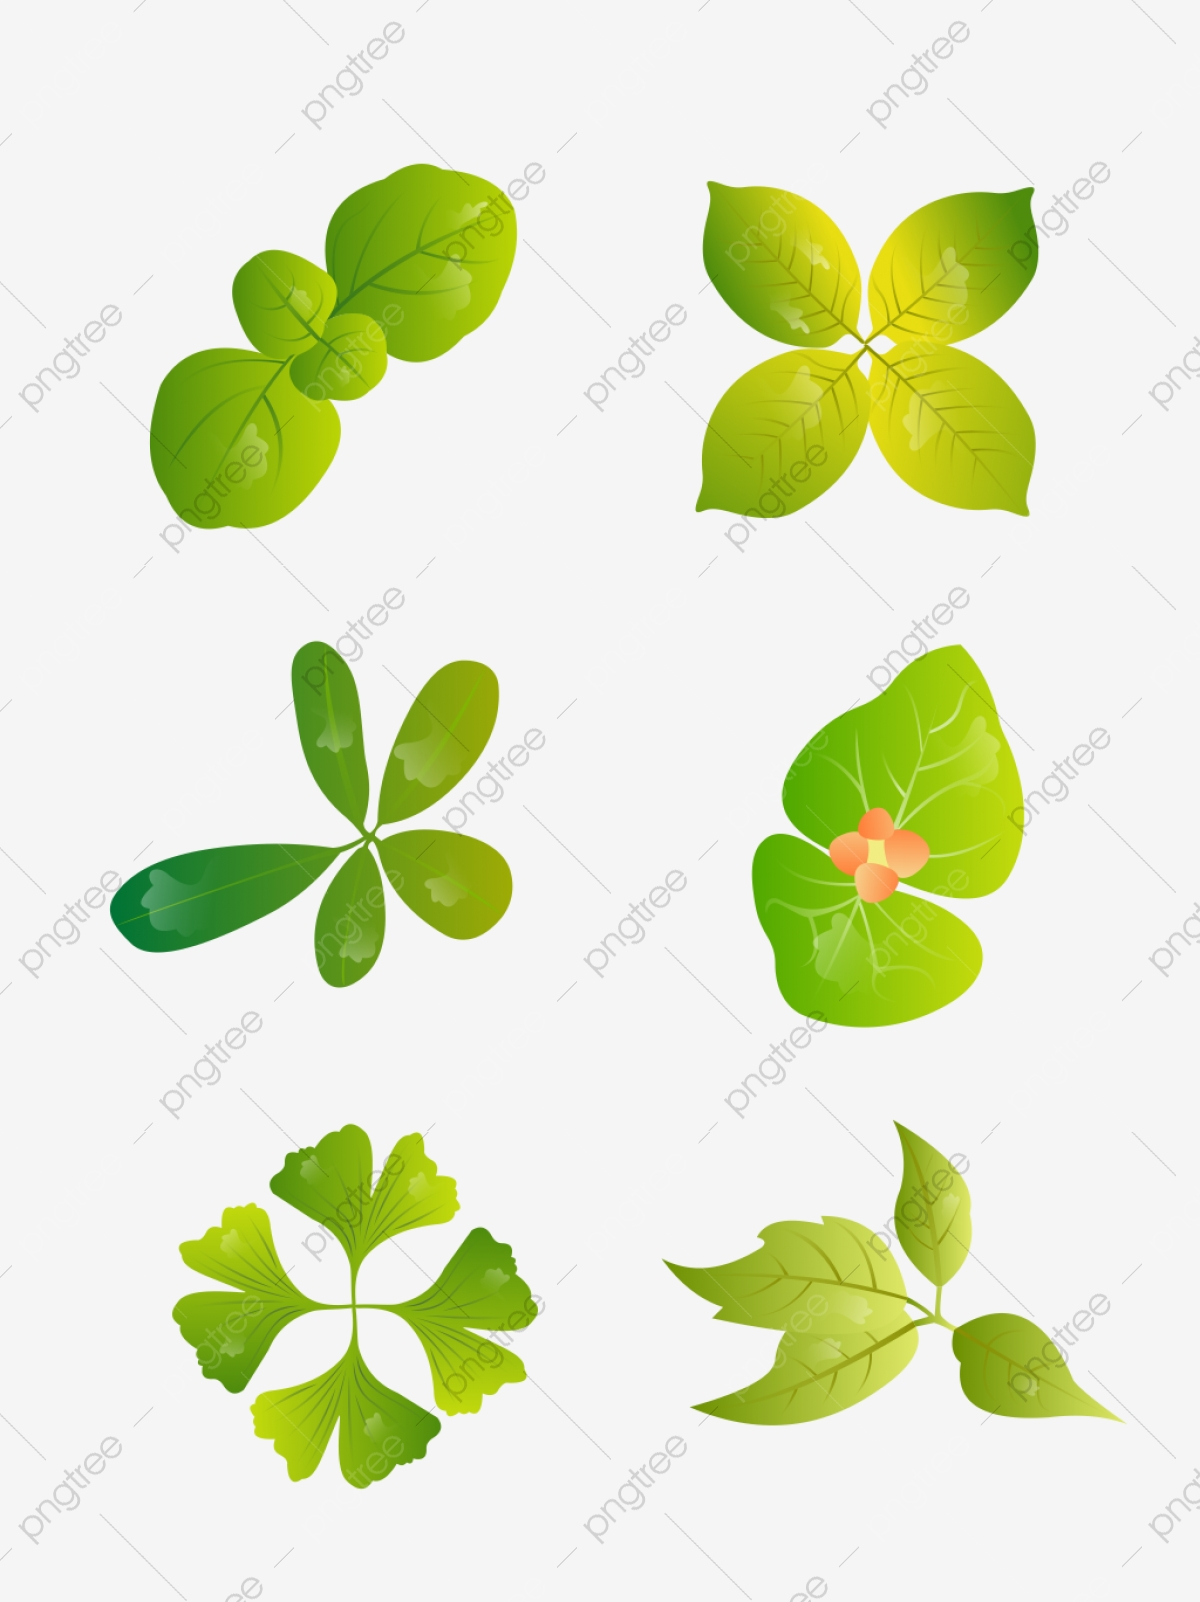 Plant Top View Png, Vector, PSD, and Clipart With Transparent Background for Free Download | Pngtree